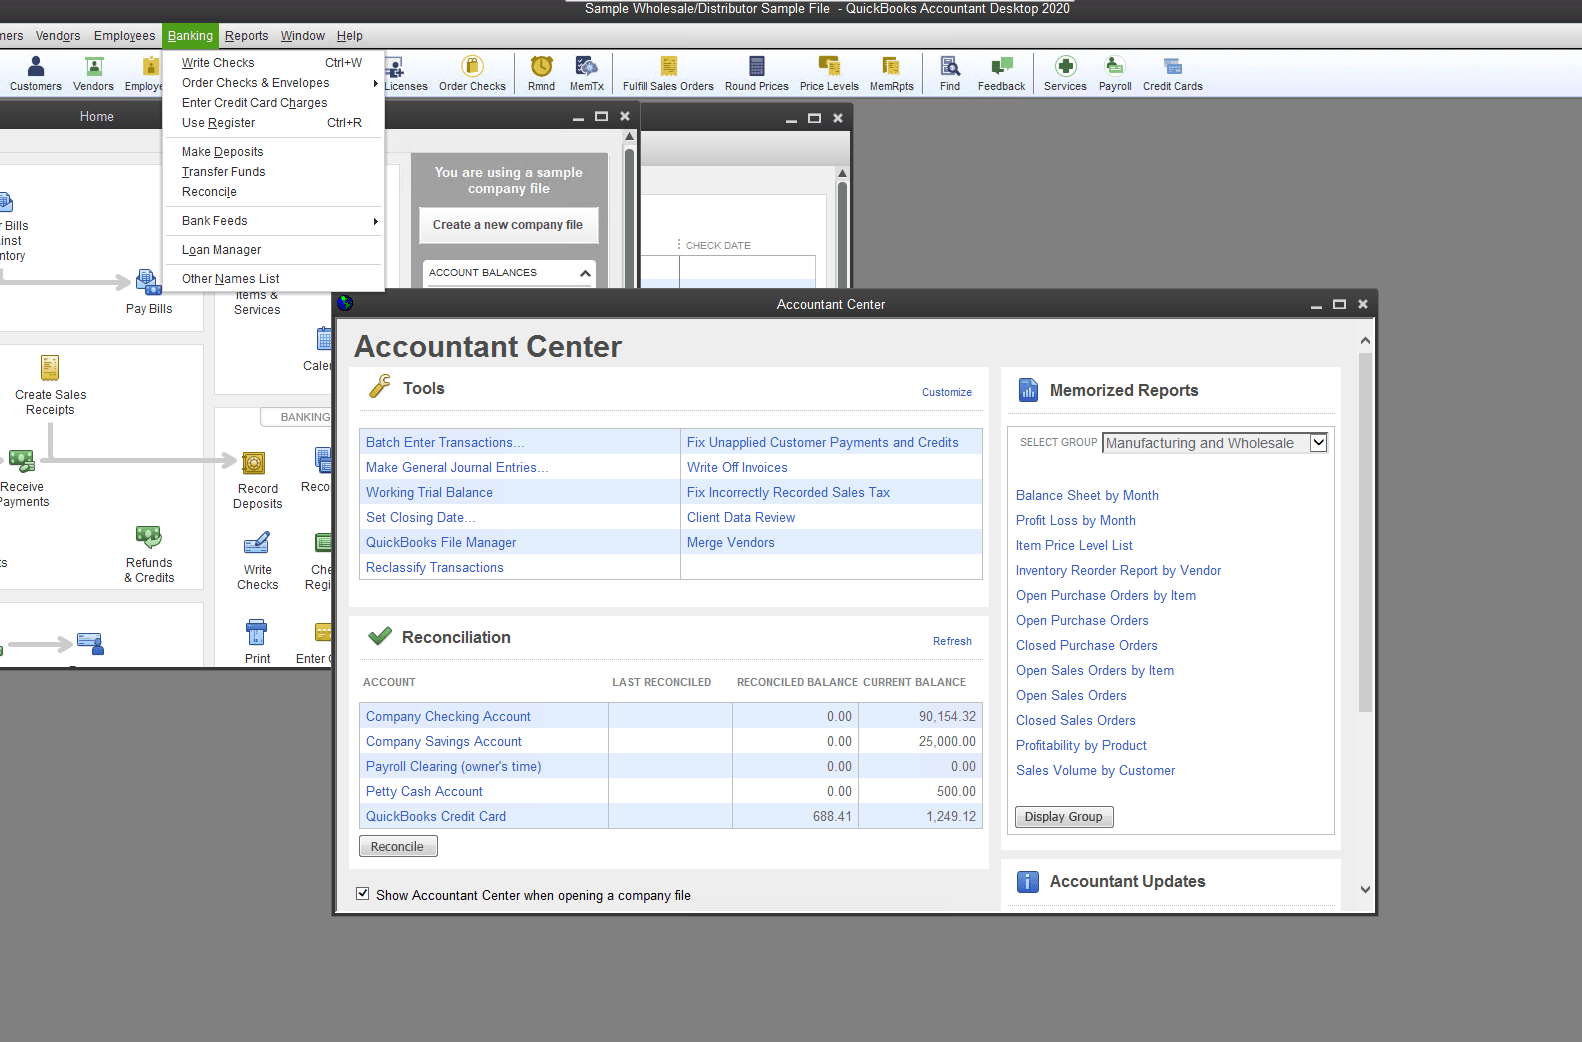 banking reconciliations in quickbooks desktop can be undone, as long as it finds previous reconciles having been completed. If not, then it will flag there weren't any previous reconciliations to be found. As always make a backup of your quickbooks company file before doing any reconciliation or unreconciliation.